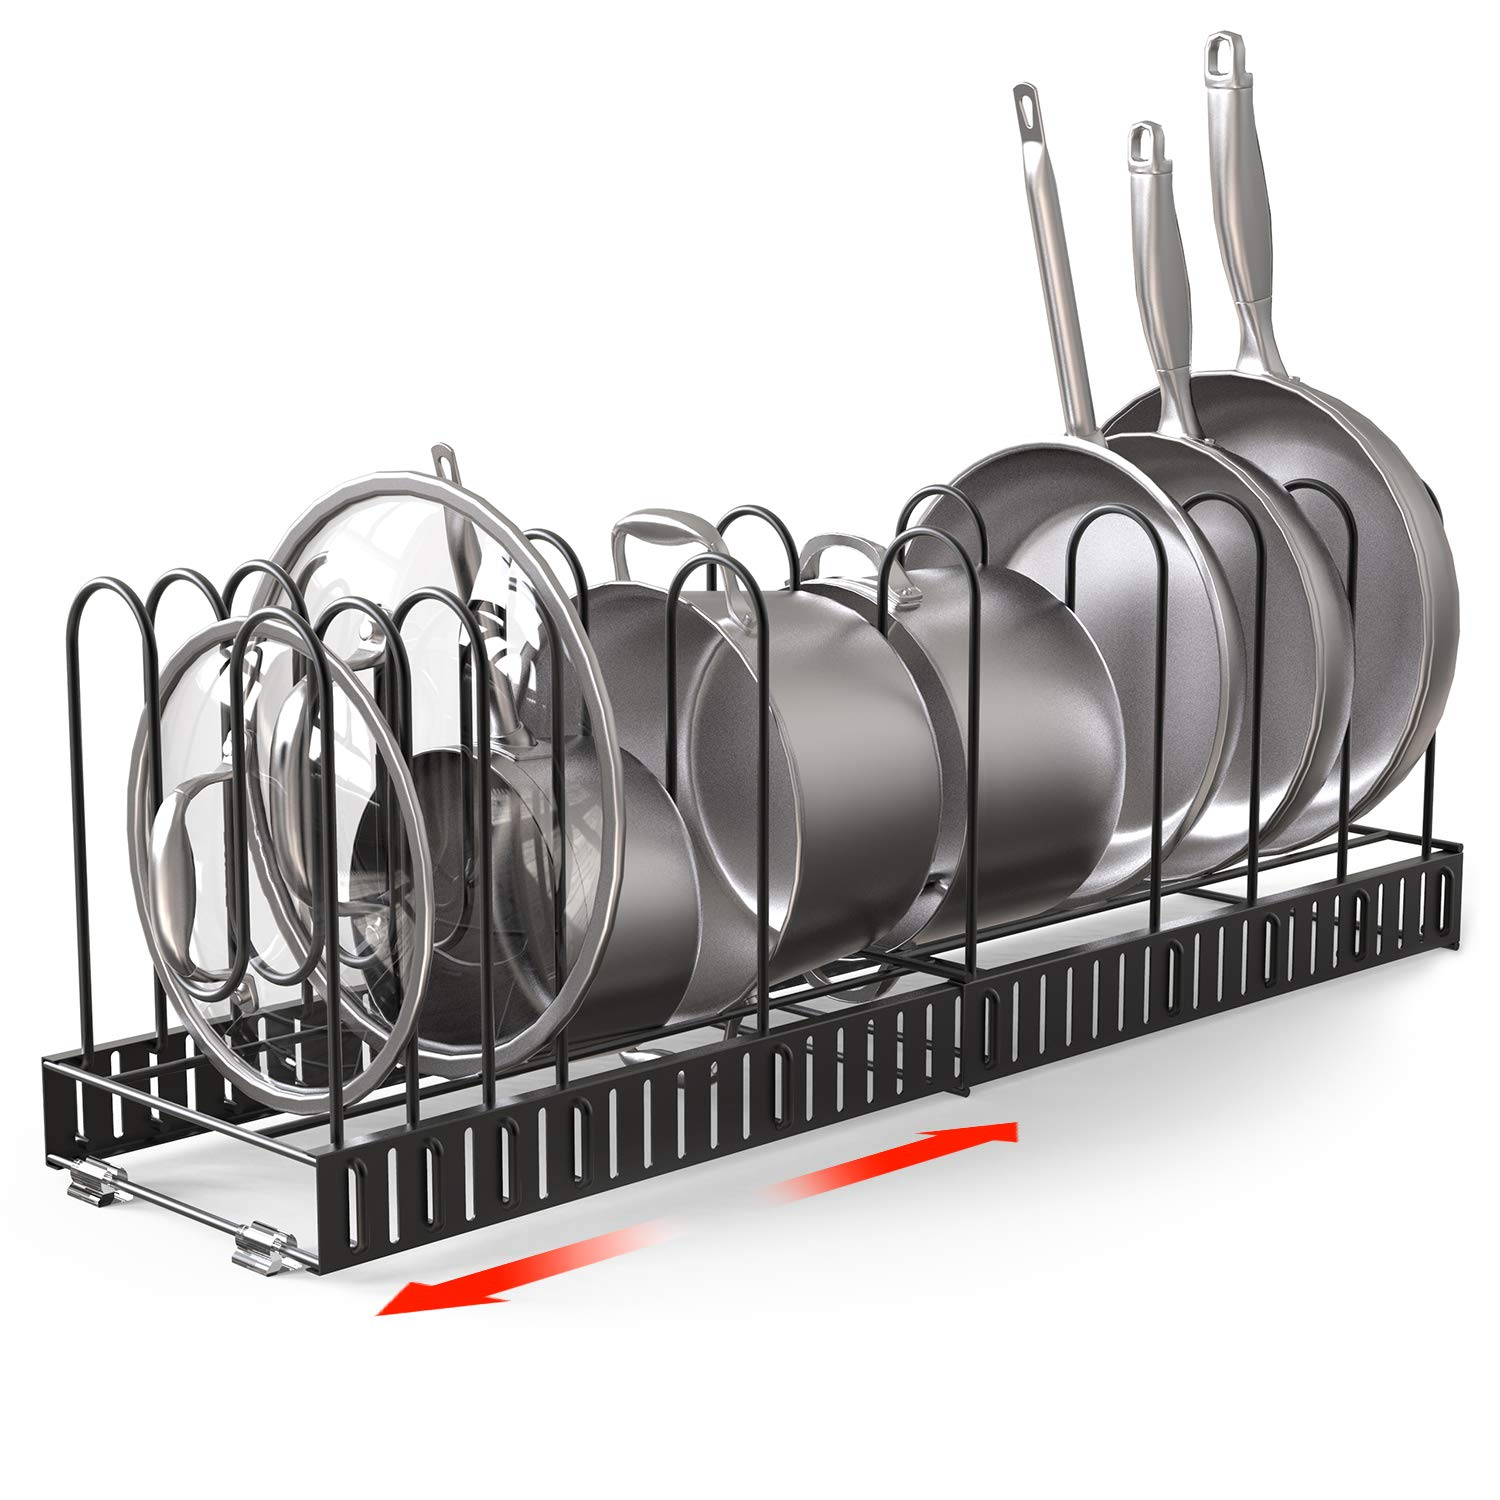 Vdomus Extensible Pot Rack Organizer with 4 DIY Methods, Length Adjustable and Max Extended to 31 inches 13+ Pans Holder, Black Metal Kitchen Cabinet Pantry Pot Lid Holder by Vdomus